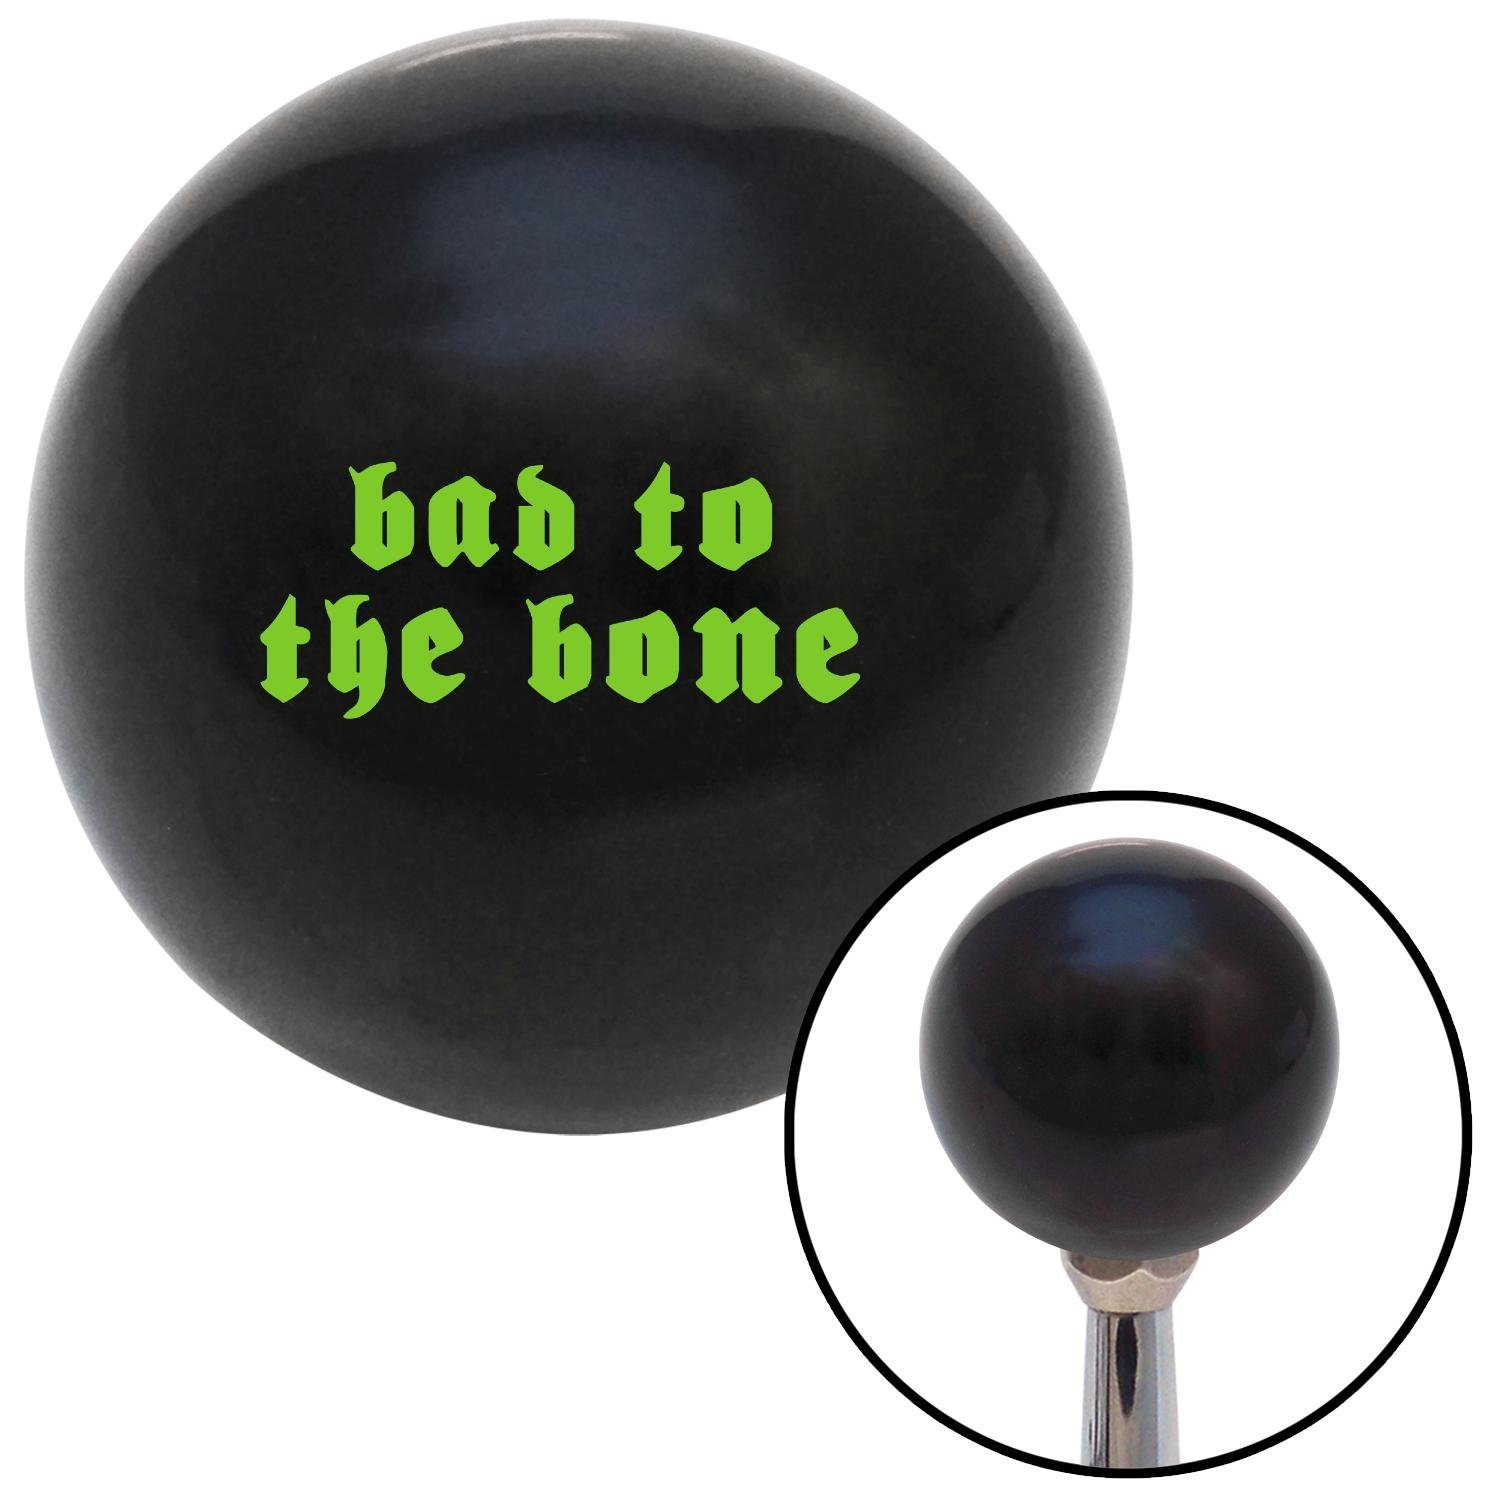 American Shifter 110387 Black Shift Knob with M16 x 1.5 Insert Green Bad to The Bone